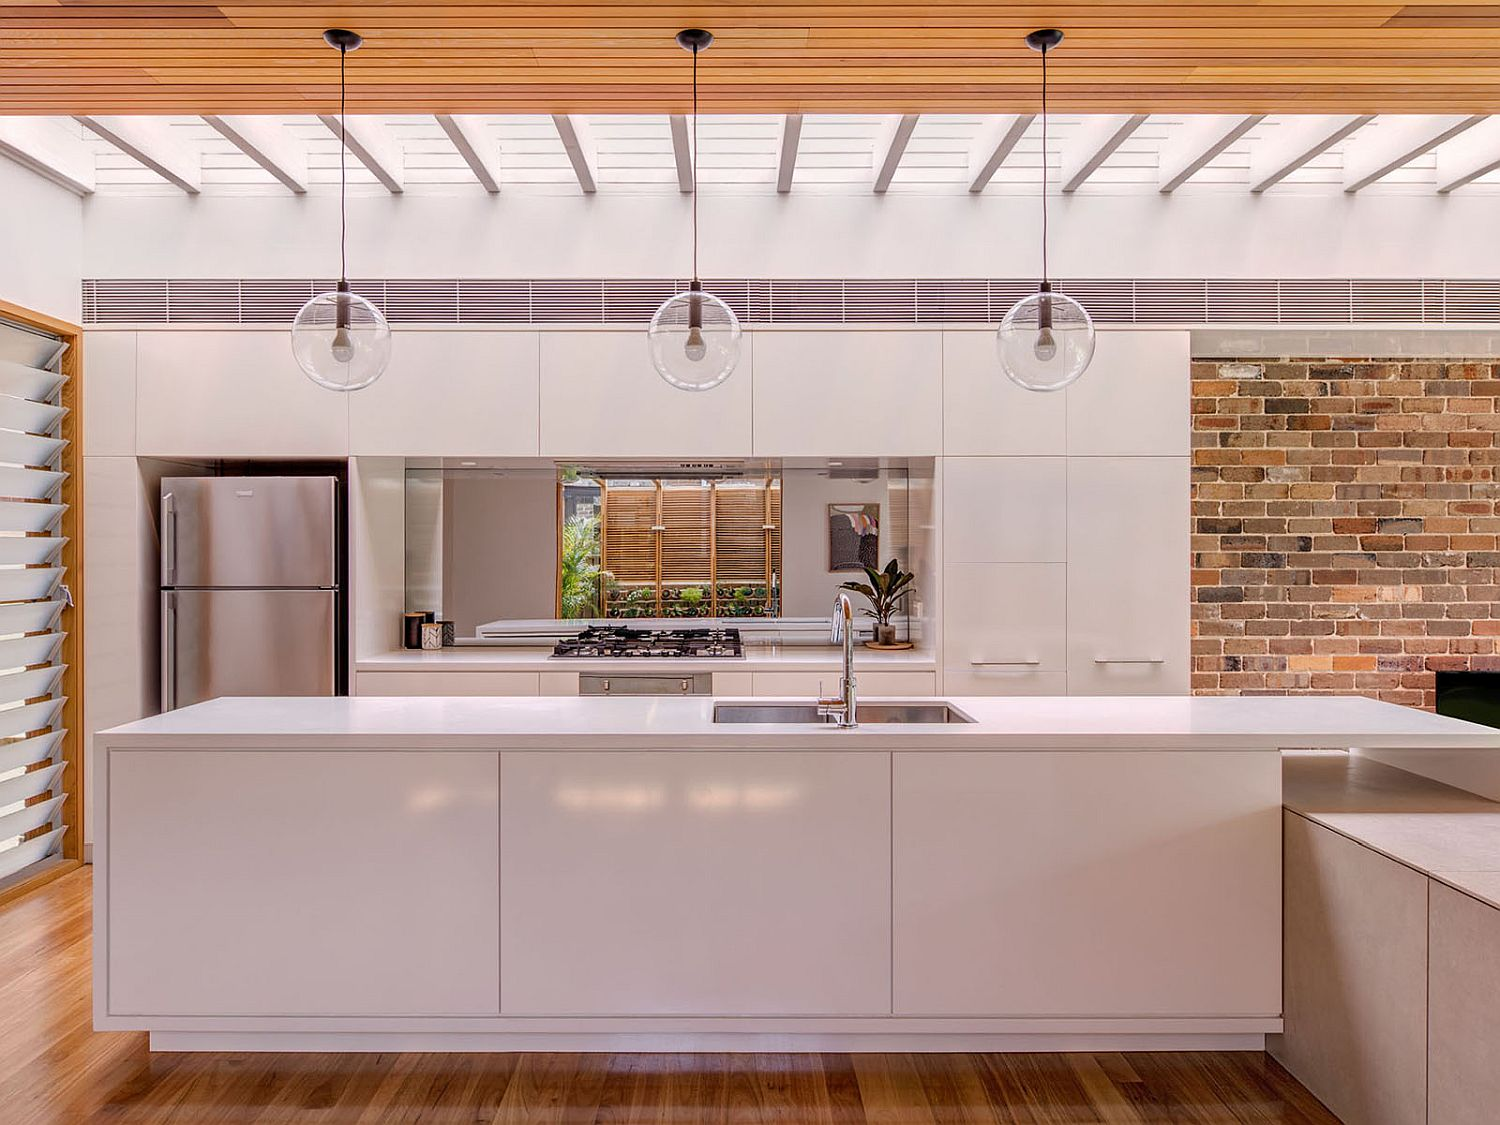 White, wood and brick kitchen of the contemporary home